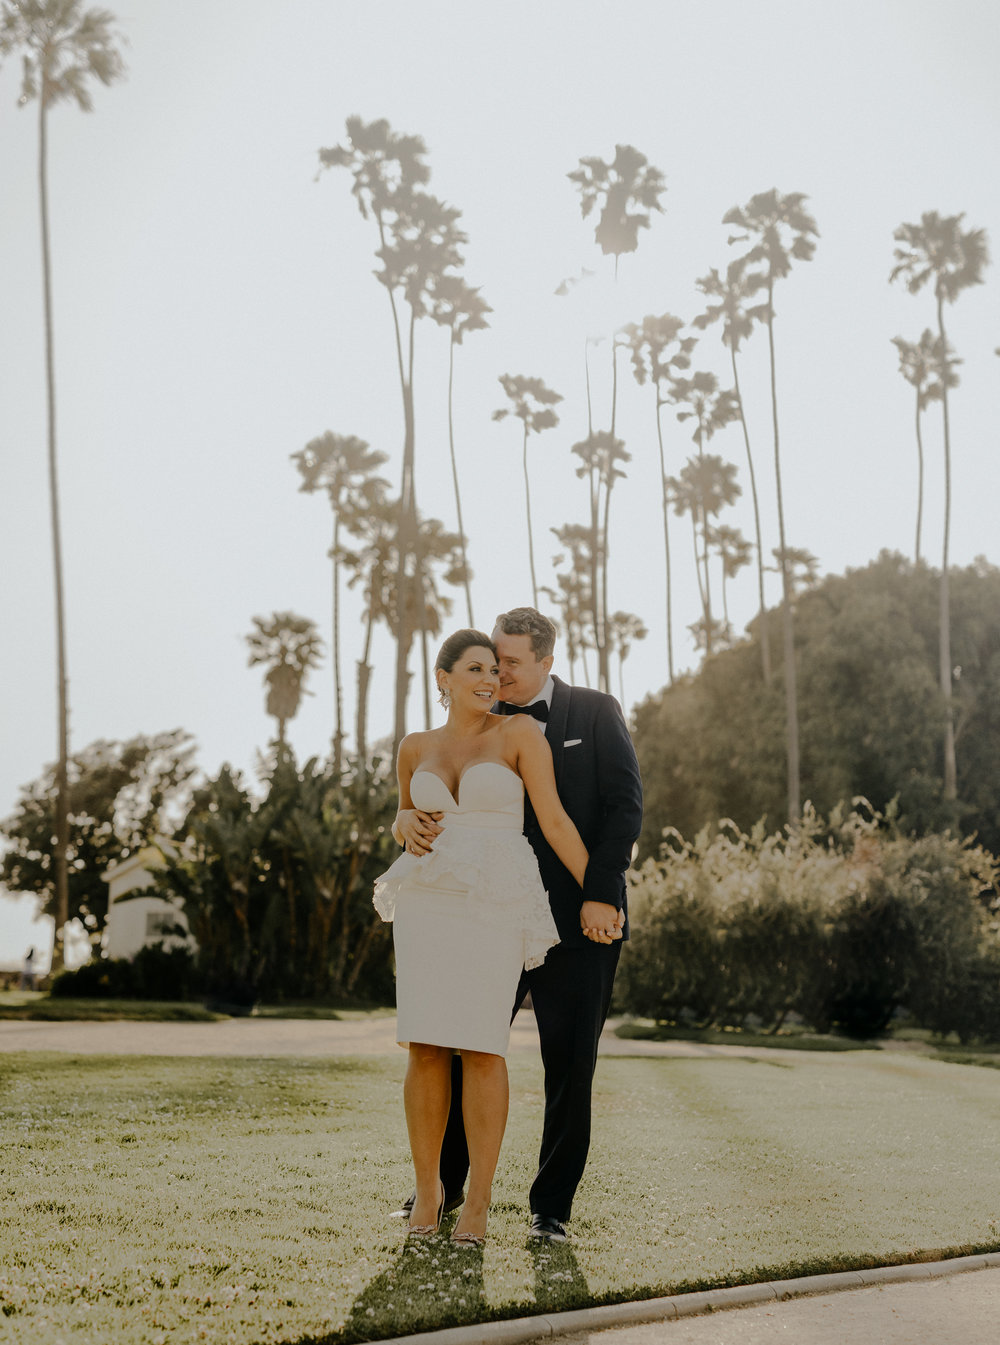 los angeles elopement - L.A. wedding photographer - Santa Monica elope - IsaiahAndTaylor.com